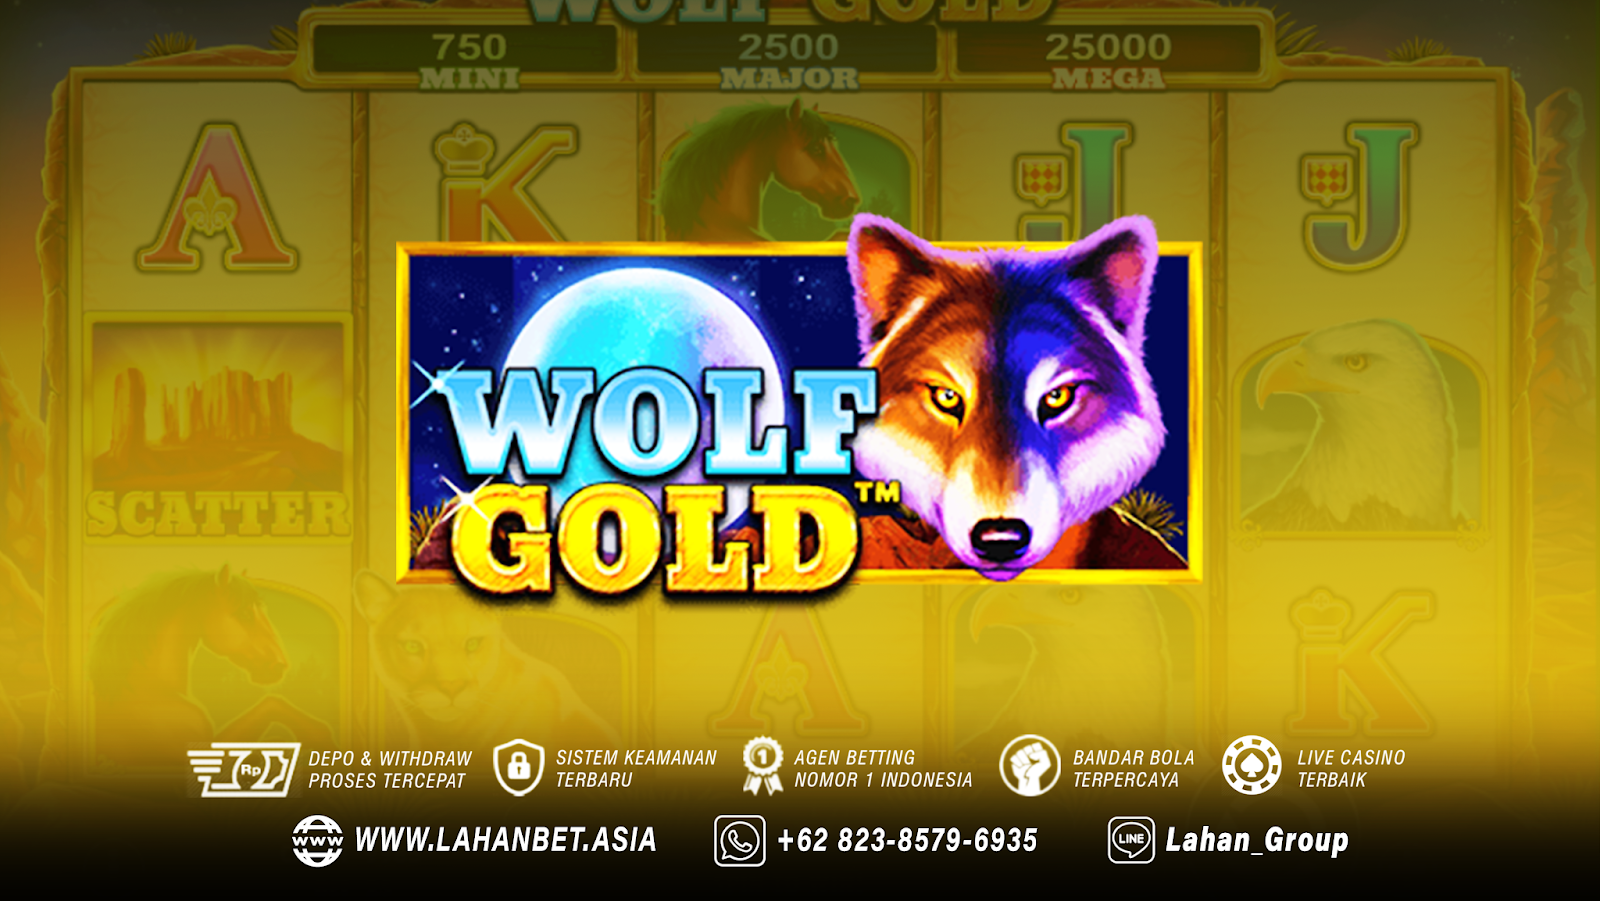 Gold frenzy demo play